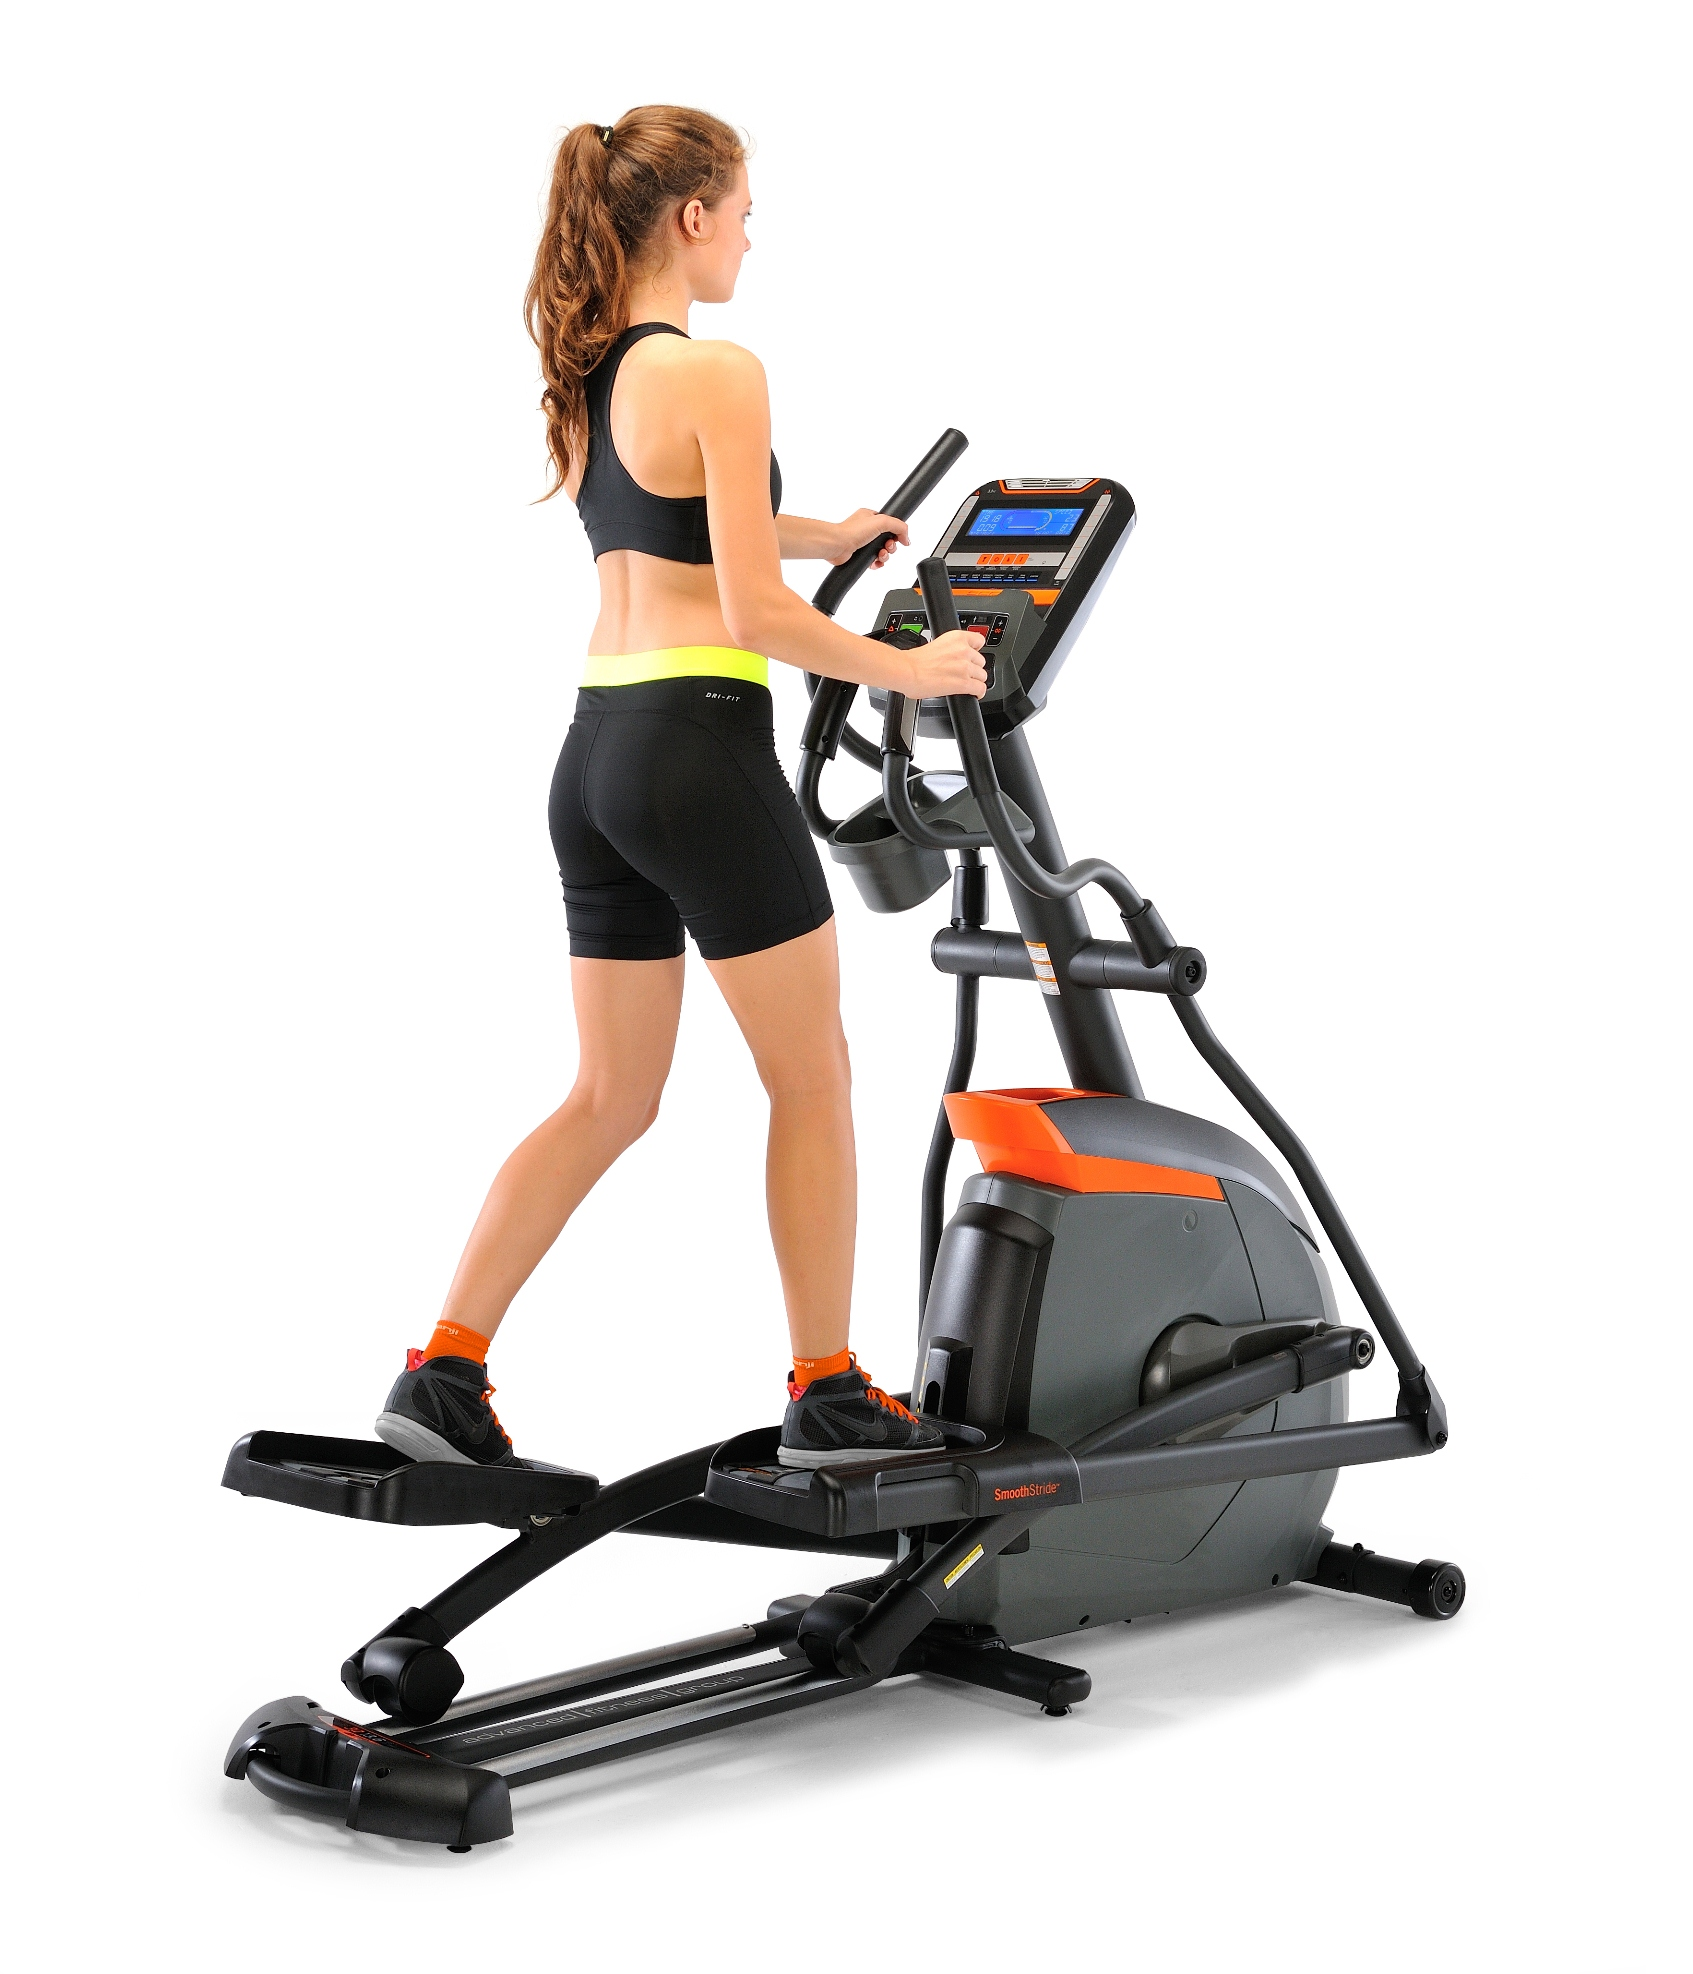 AFG 3.3AE Elliptical Trainer